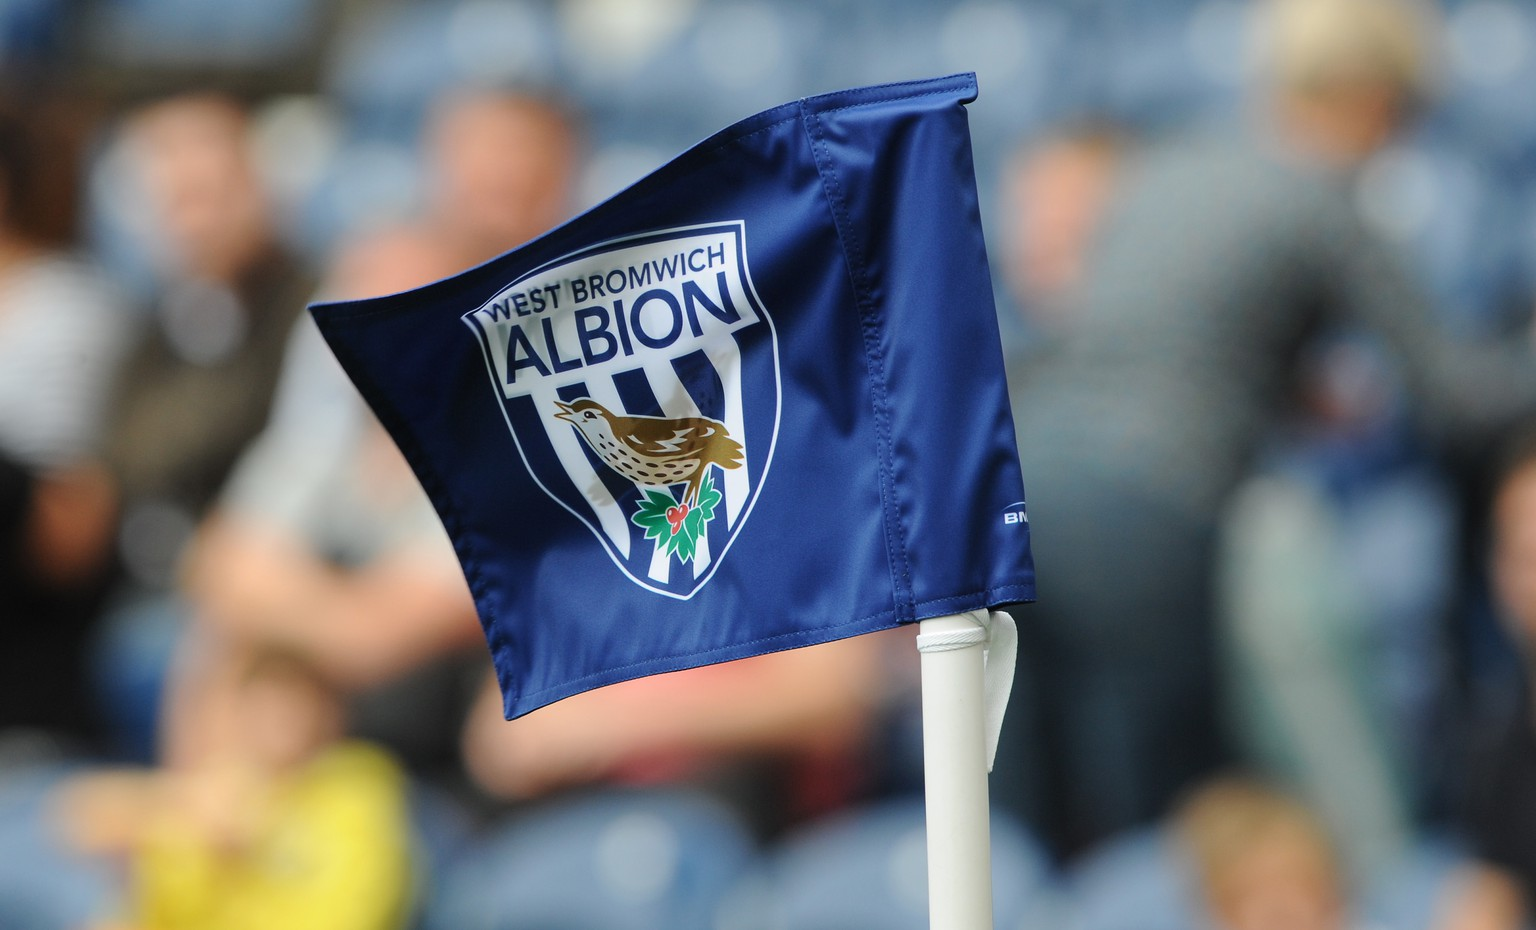 FILE - In this Sunday, Aug. 23, 2015, file photo, a West Bromwich corner flag flies during the English Premier League soccer match between West Bromwich Albion and Chelsea at the Hawthorns, West Bromwich, England. West Bromwich Albion says a Chinese investment group has agreed to buy the English Premier League club. West Brom said in a statement on Friday that Yunyi Guokai Sports Development Limited, headed by entrepreneur Lai Guochuan, will complete a takeover of the club subject to approval by the Premier League and English financial authorities. (AP Photo/Rui Vieira, FIle)